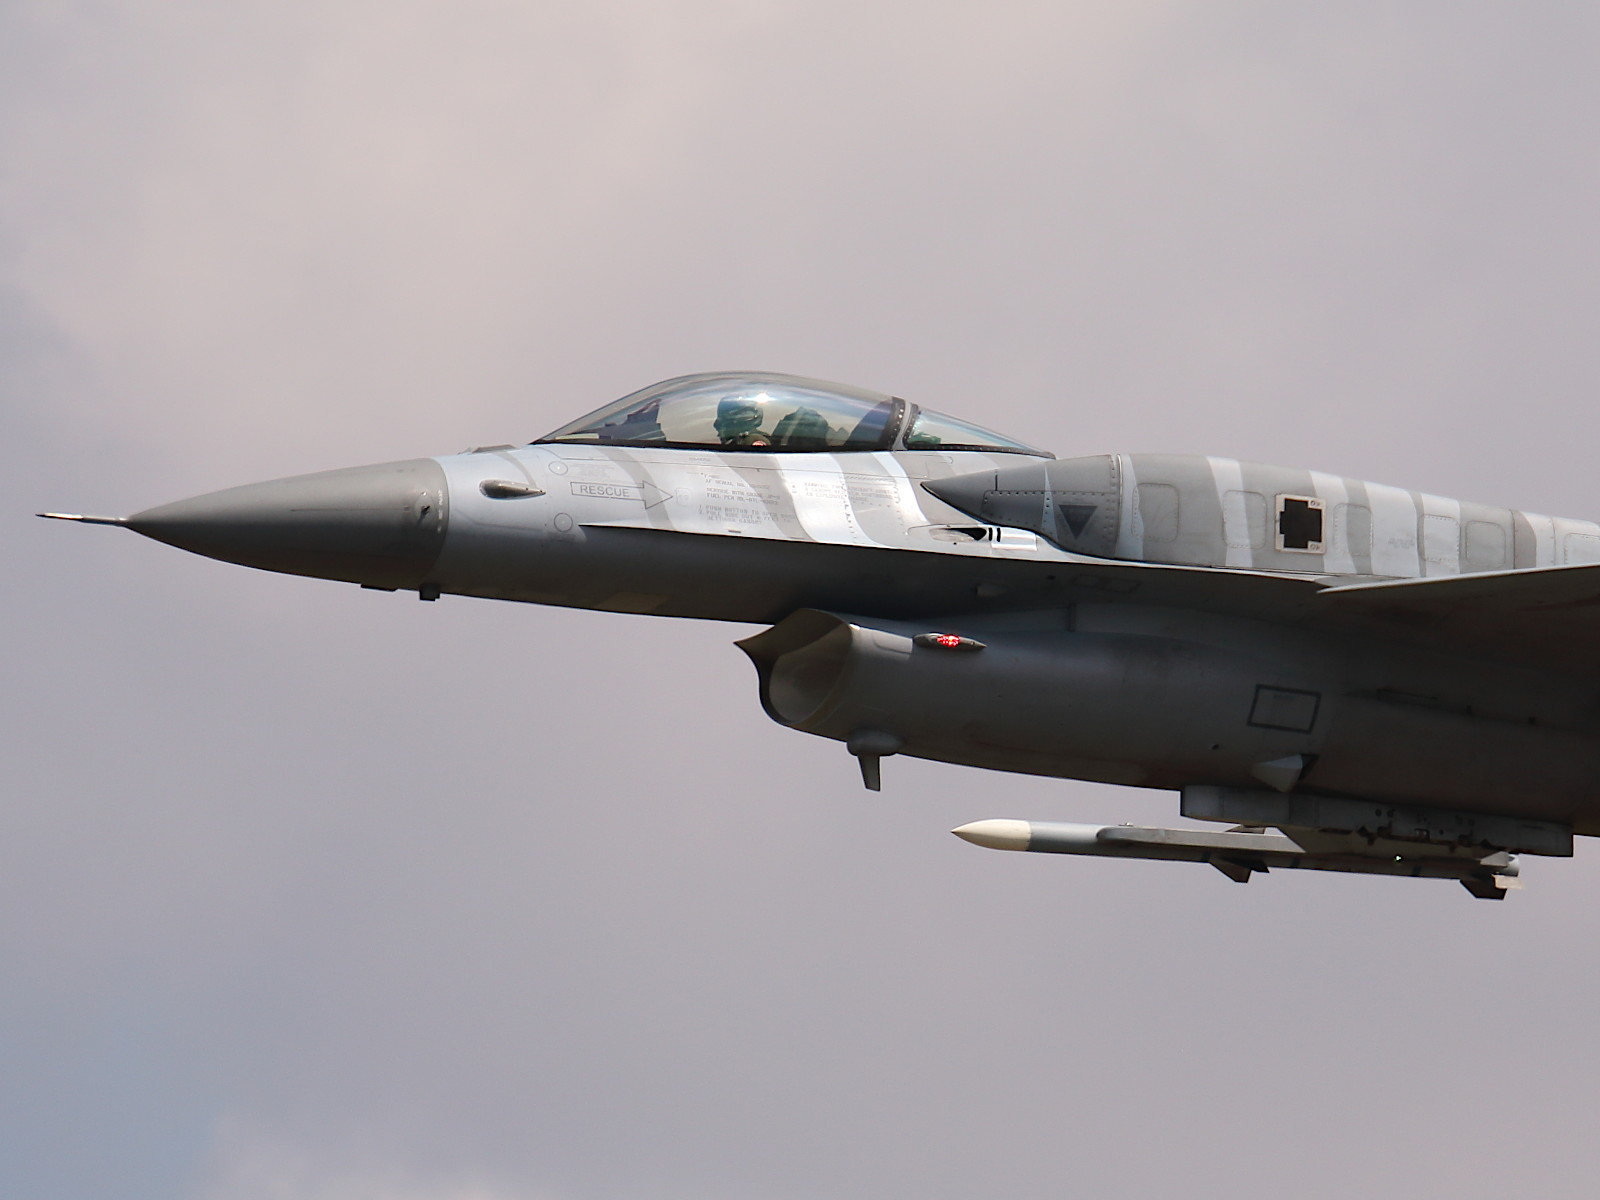 Lockheed Martin F-16C (Block 52) Fighting Falcon 4052 aus Polen © Doppeladler.com